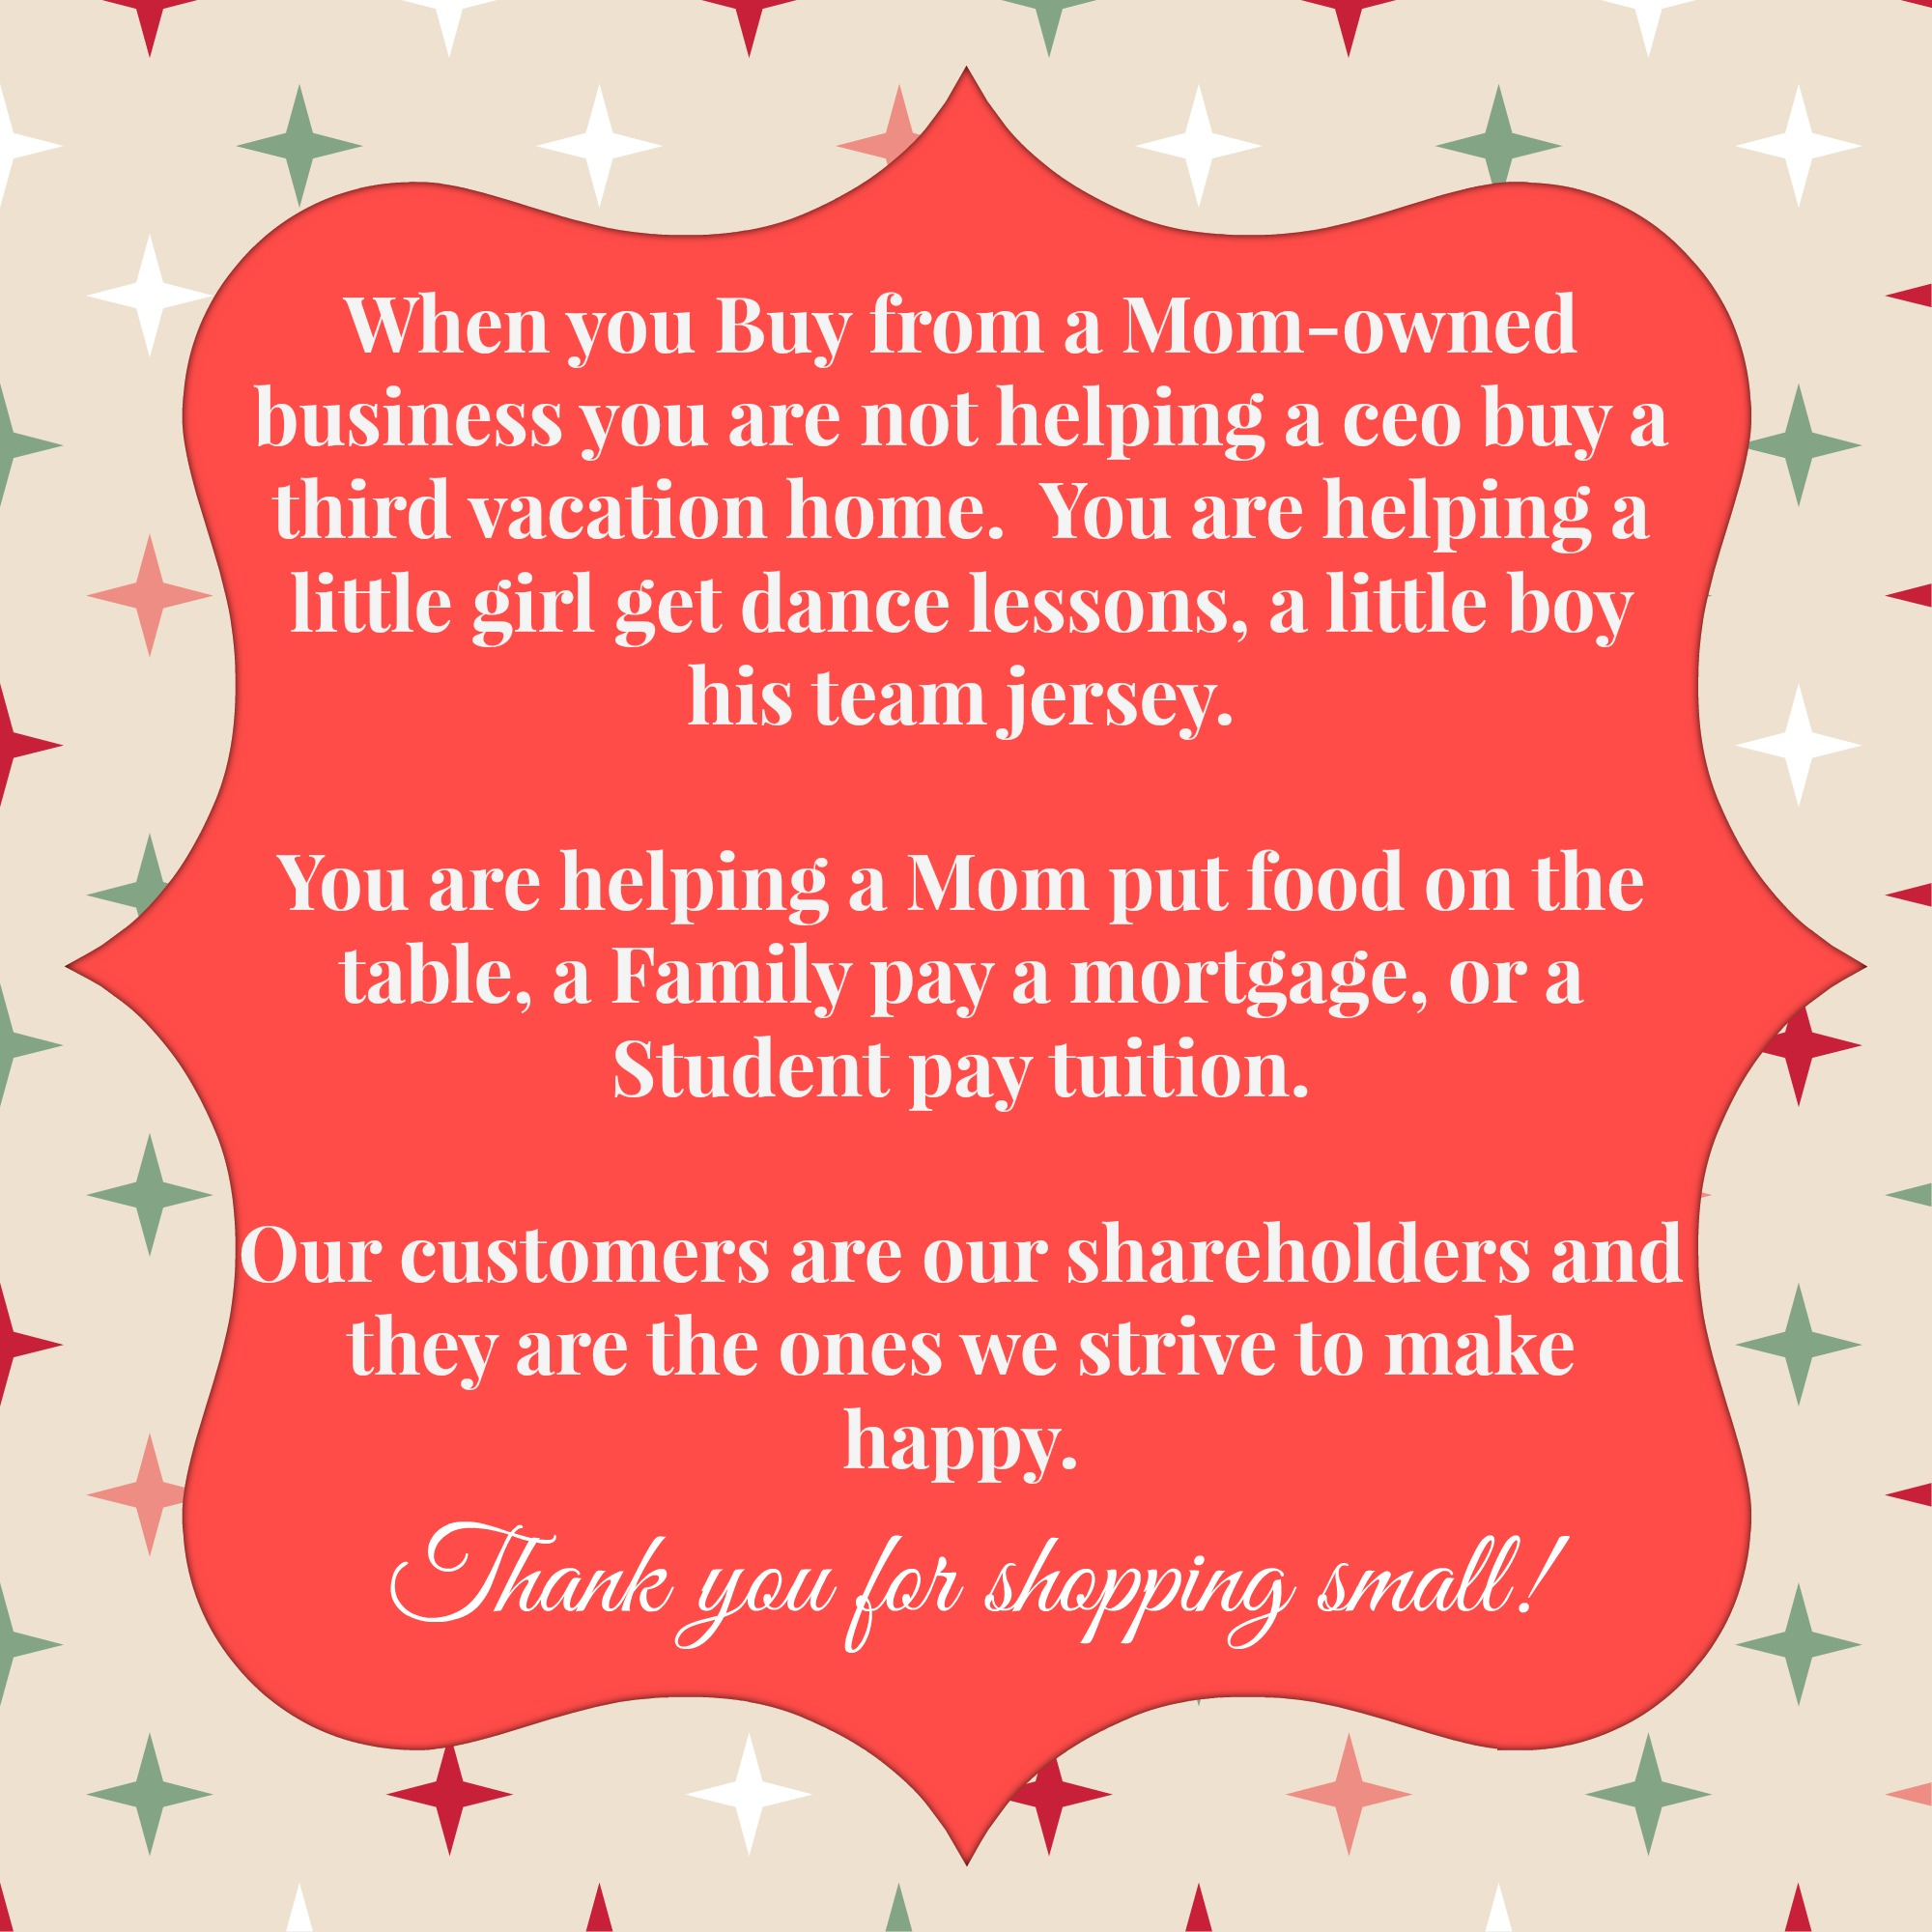 Shop Small, Shop Mom's:  A Mom-Owned Business Gift Guide